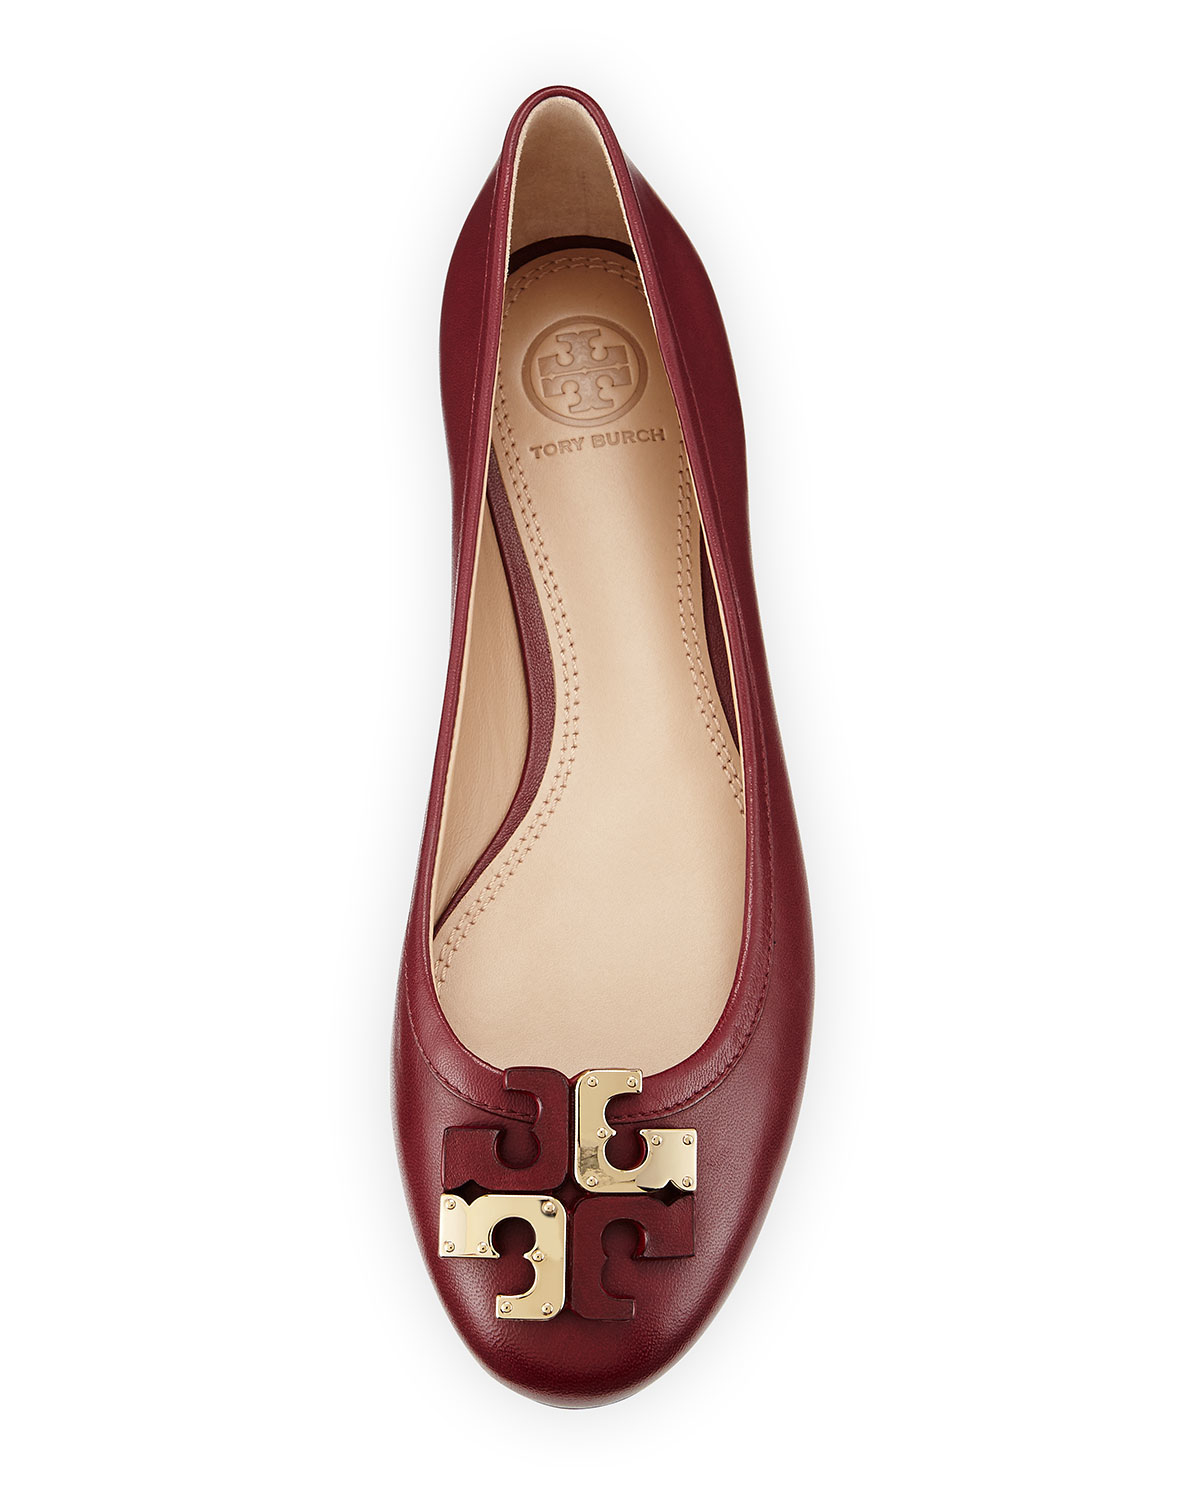 d664c475f4b810 ... shopping lyst tory burch lowell leather ballet flats in red 92693 ebff4